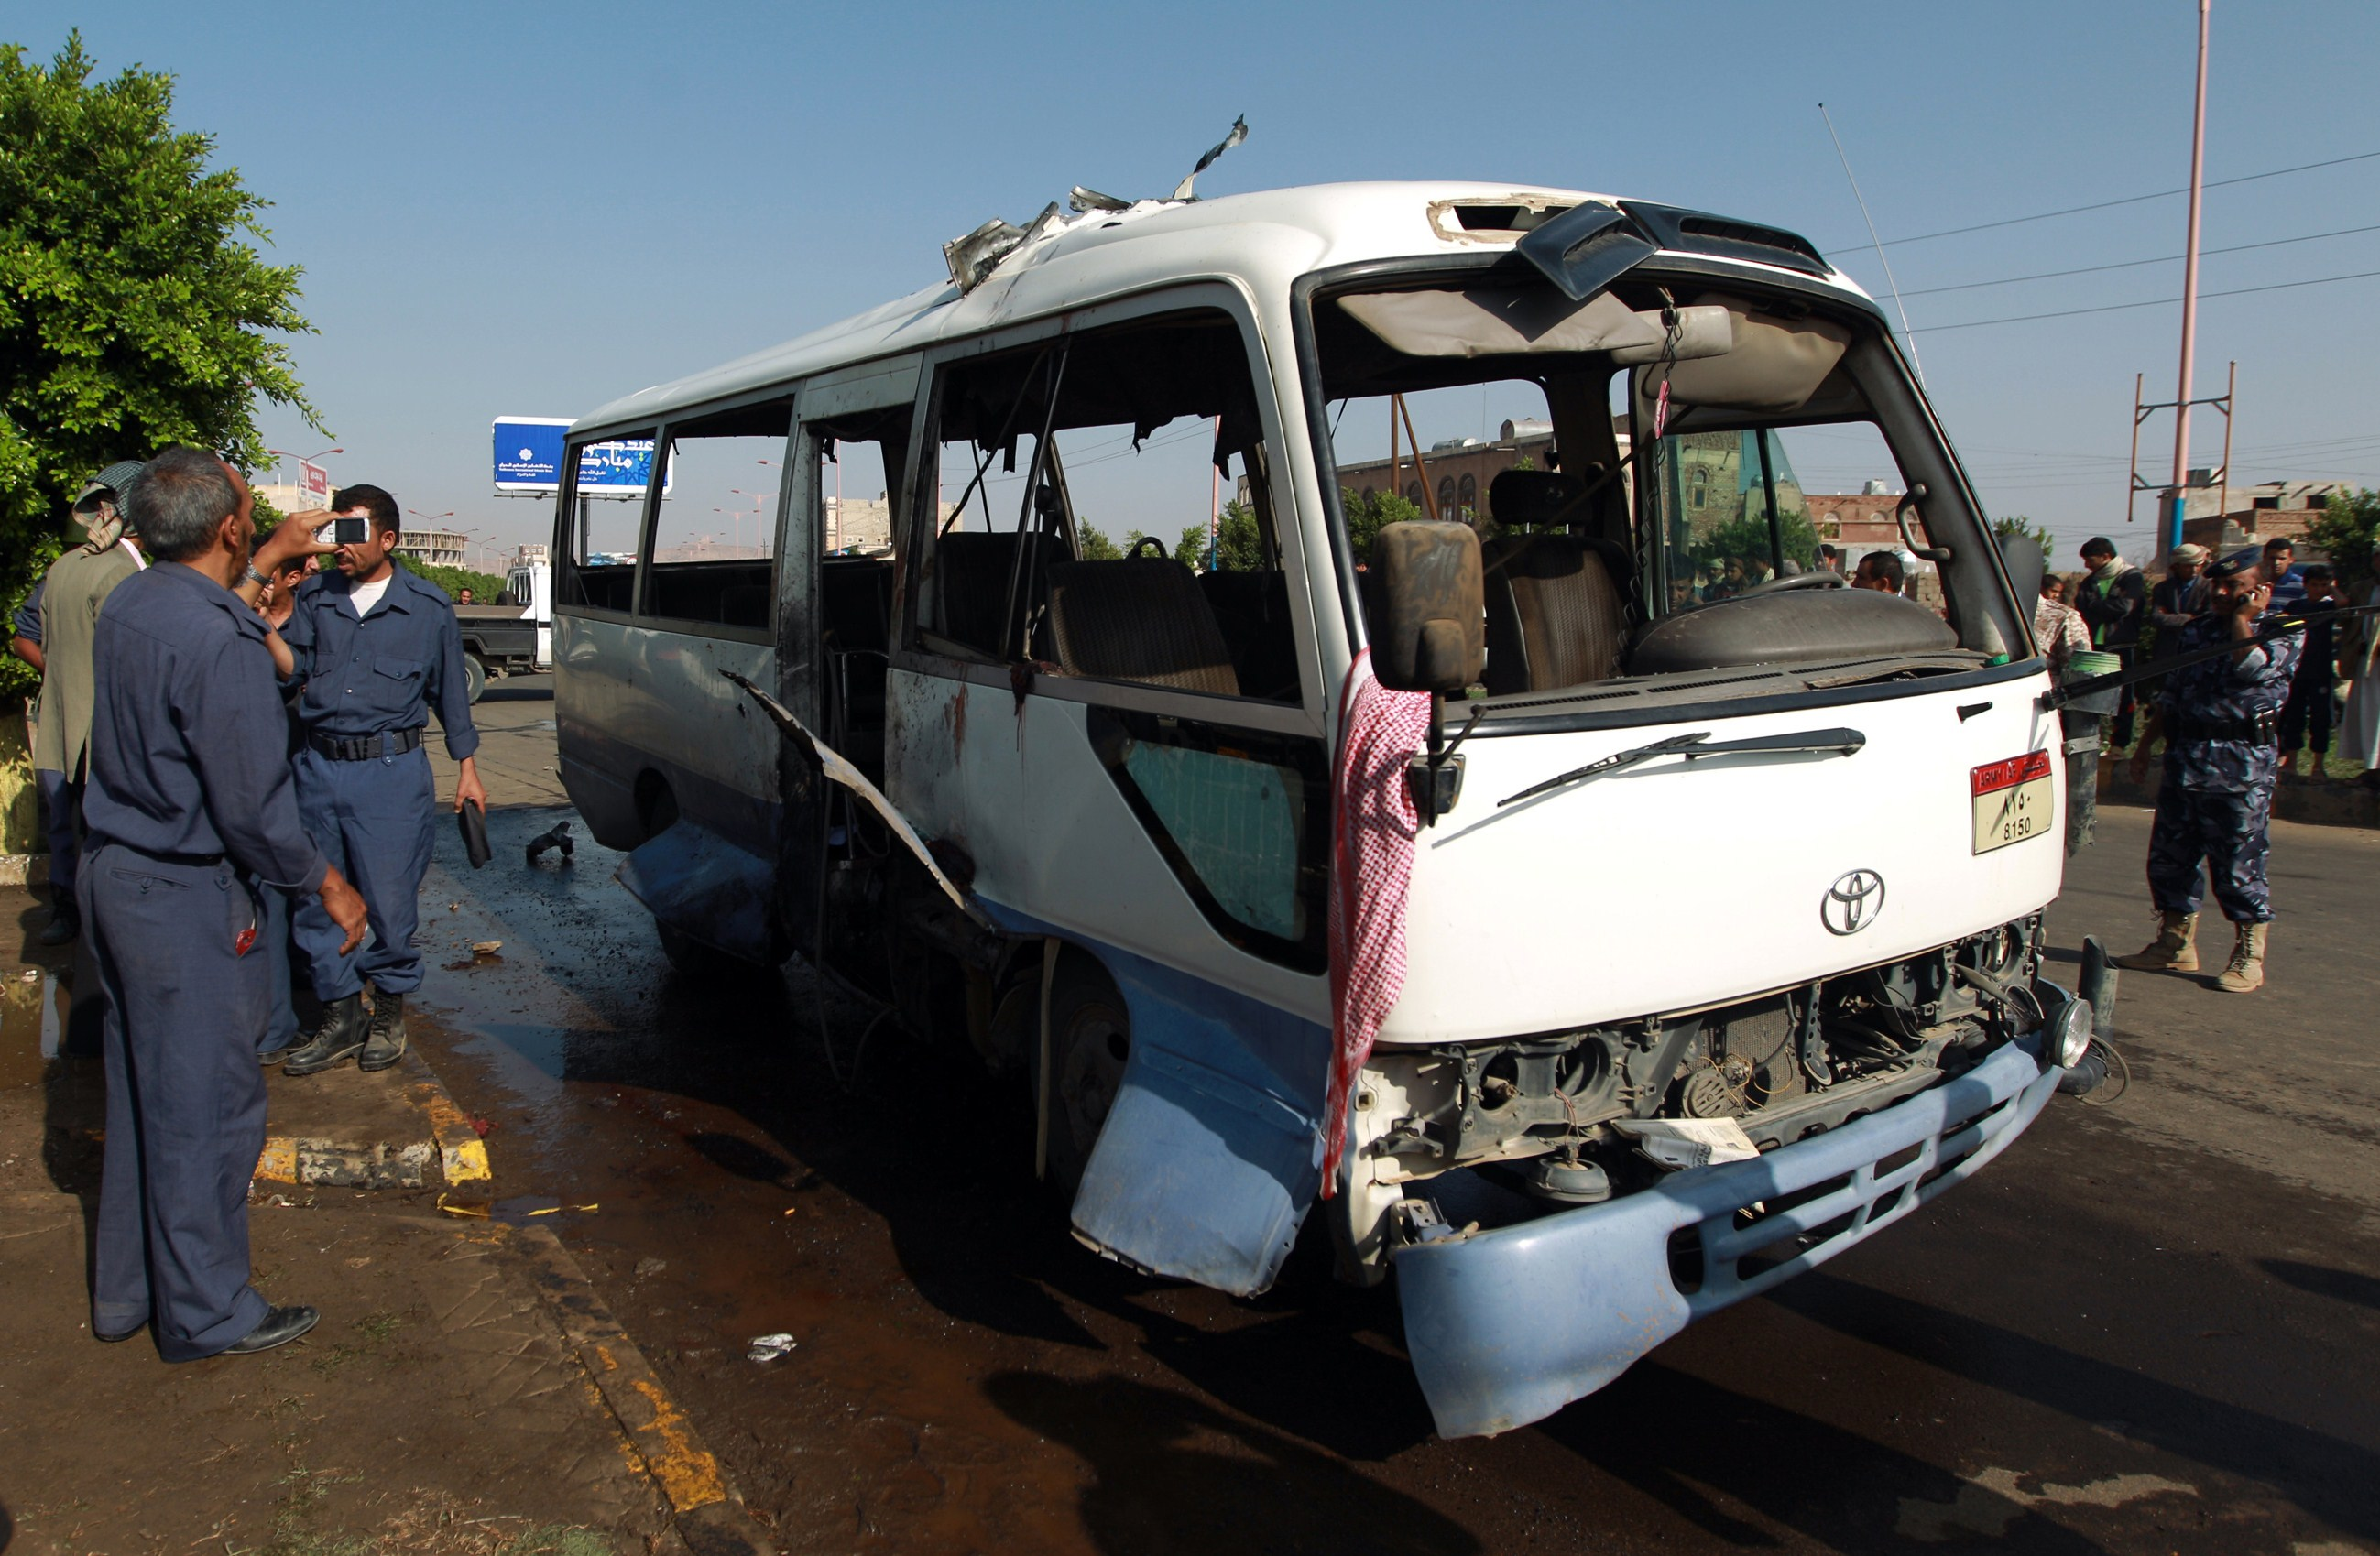 Yemeni security forces inspect a damaged military bus following a bomb blast in Sanaa on August 25, 2013. (AFP Photo)